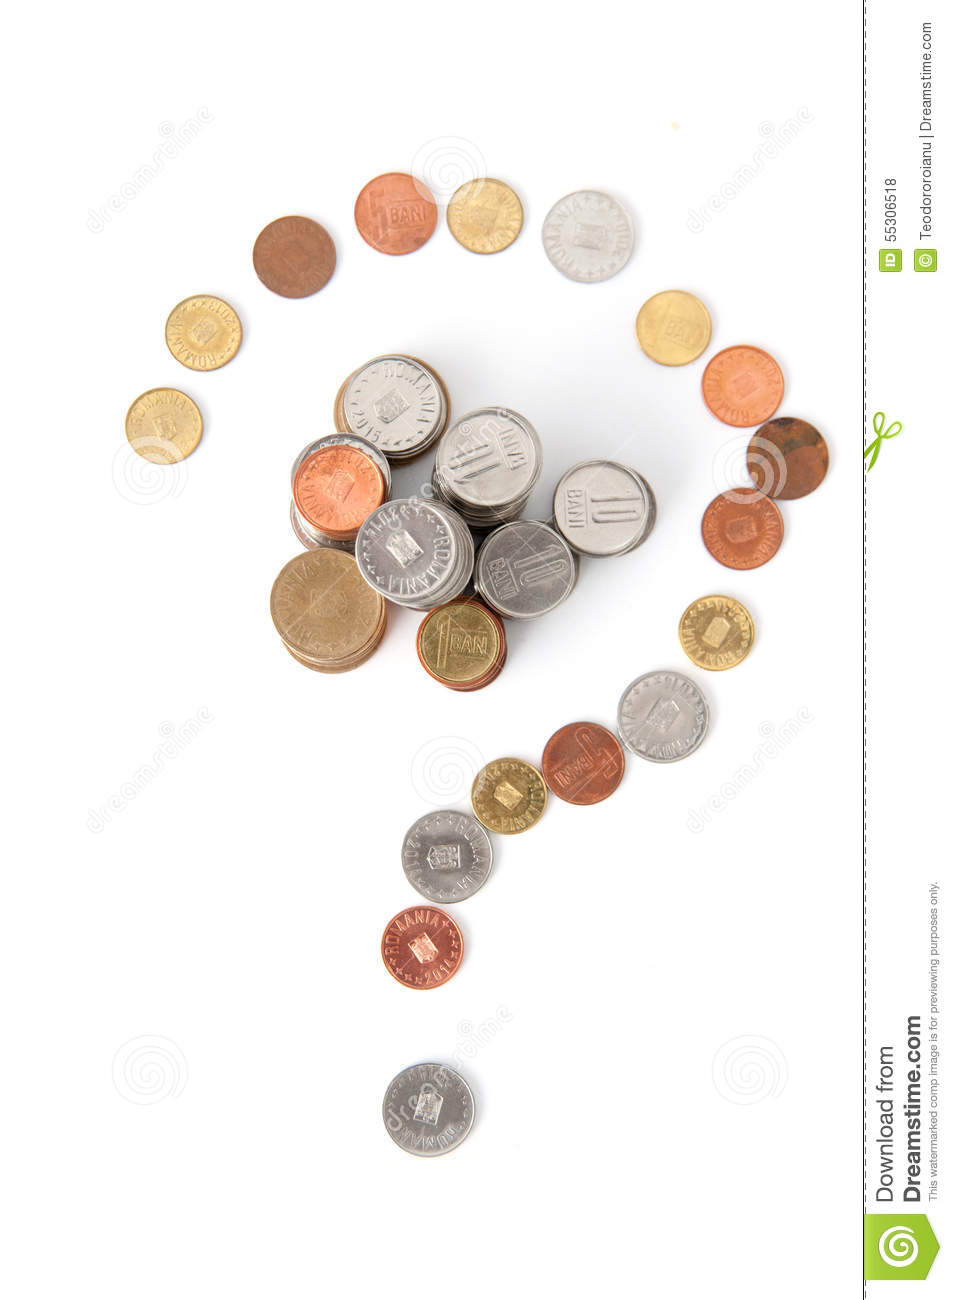 Coins questions mark